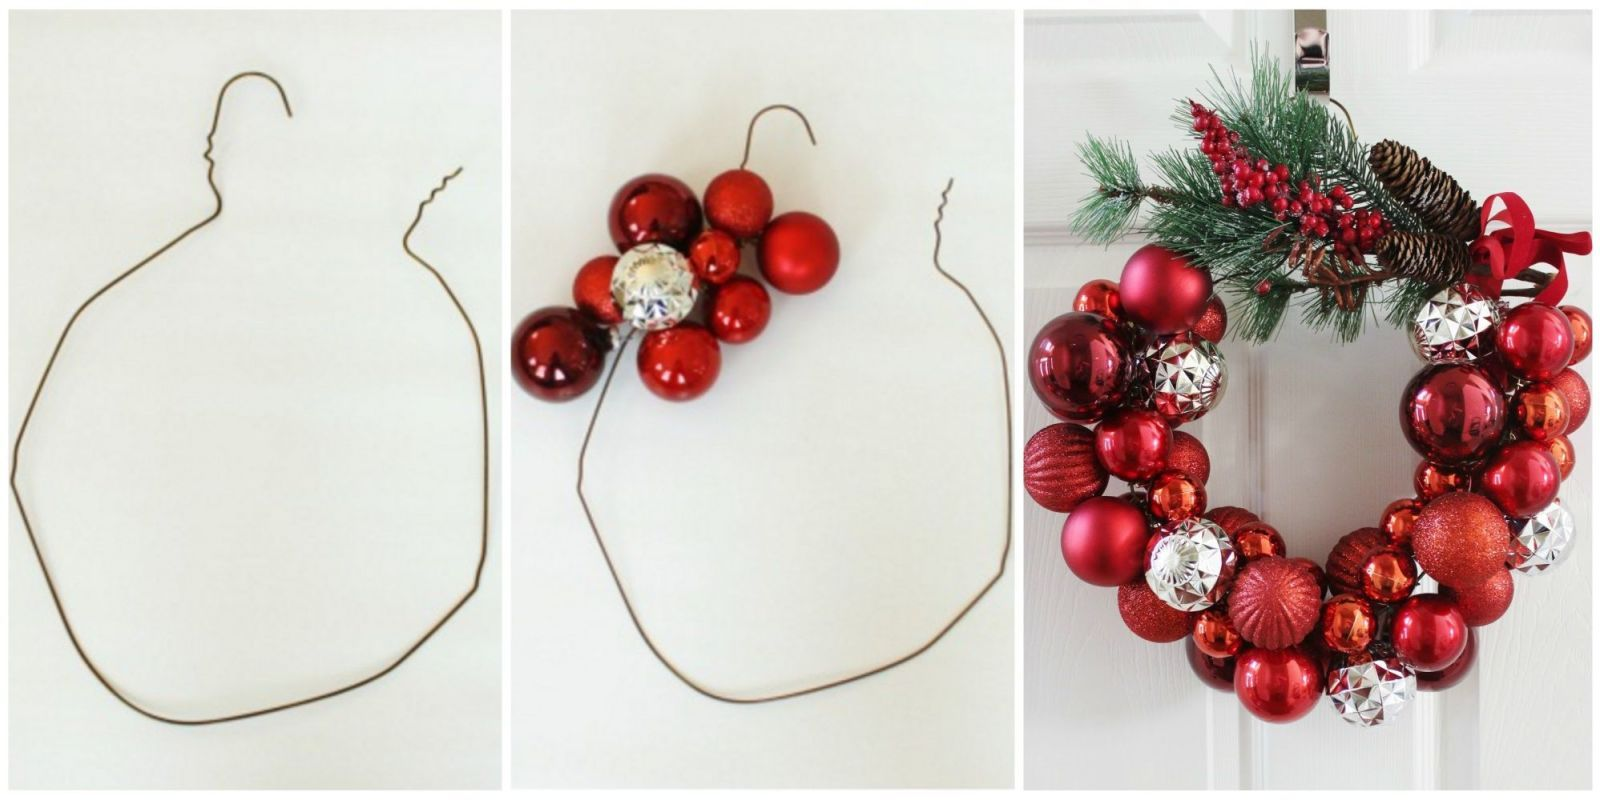 How To Make A Christmas Wreath With A Wire Hanger DIY